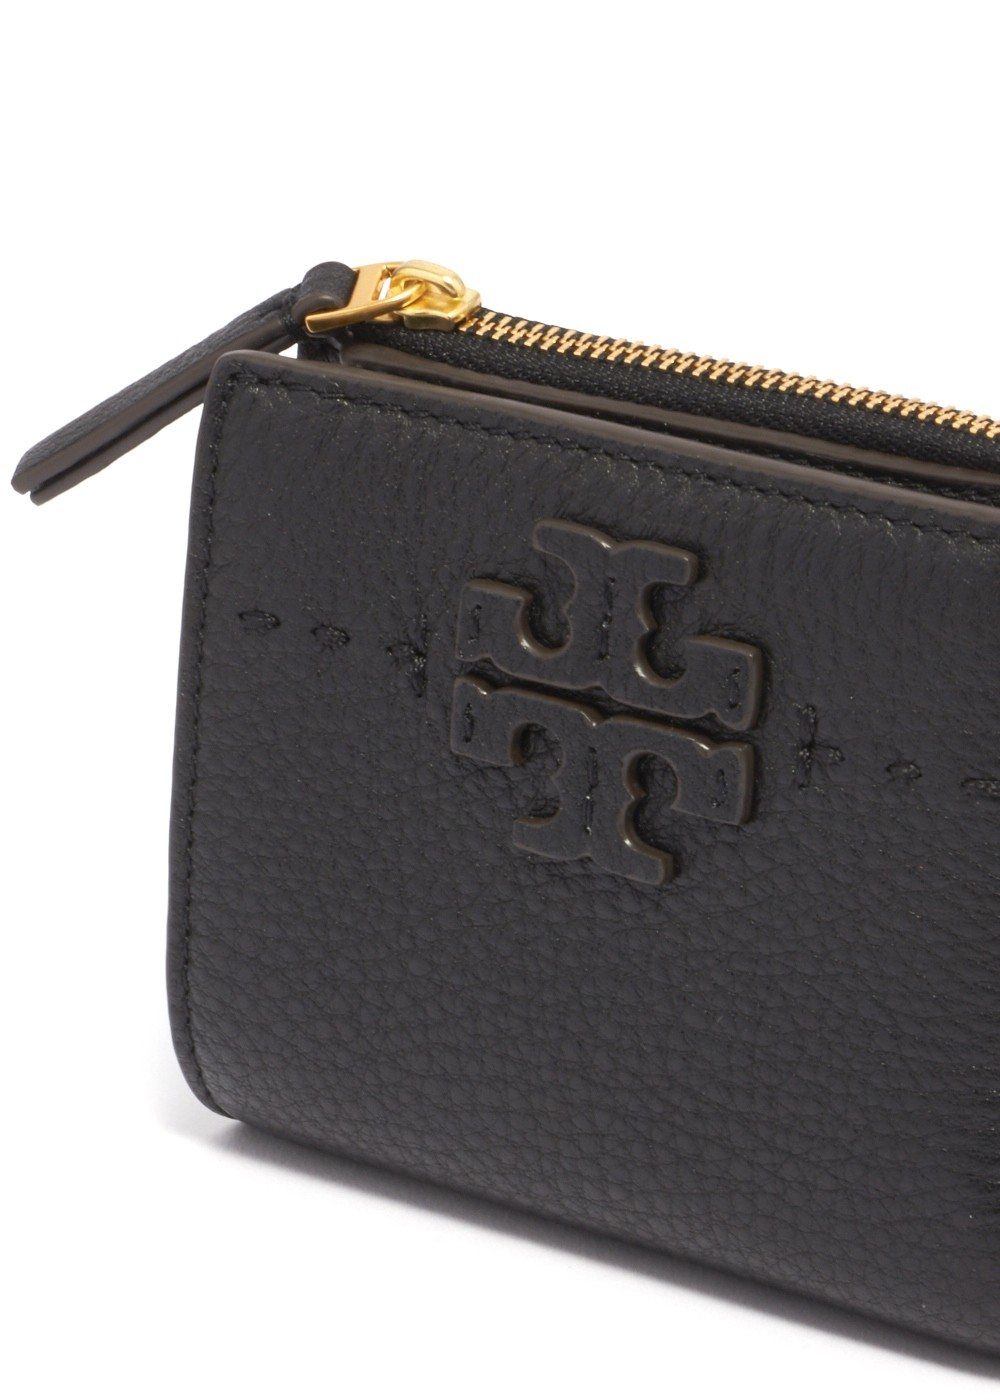 TORY BURCH|トリバーチ|MCGRAW|マックグロー|MINI FOLDABLE WALLET